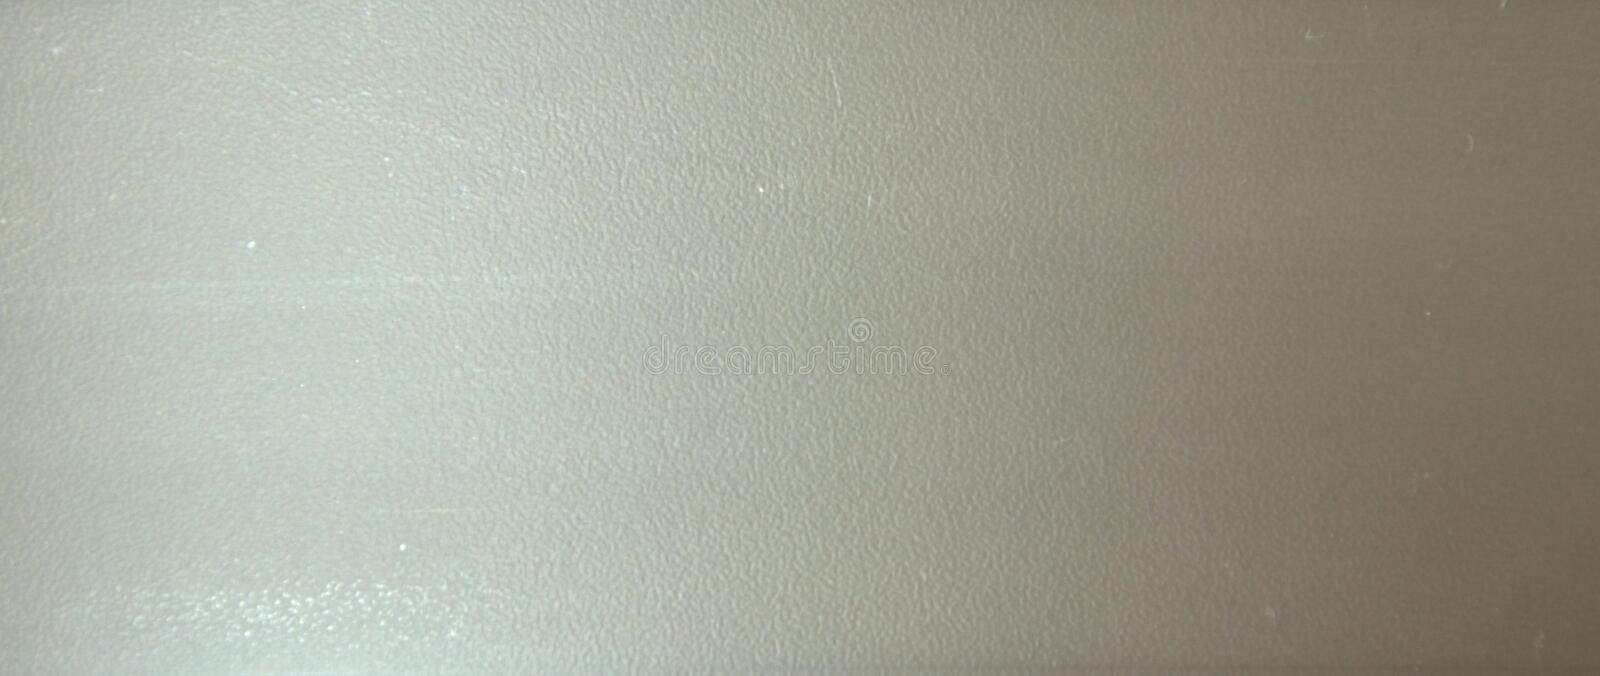 Light gray monochrome background, horizontally positioned. Gradient. Close-up stock image